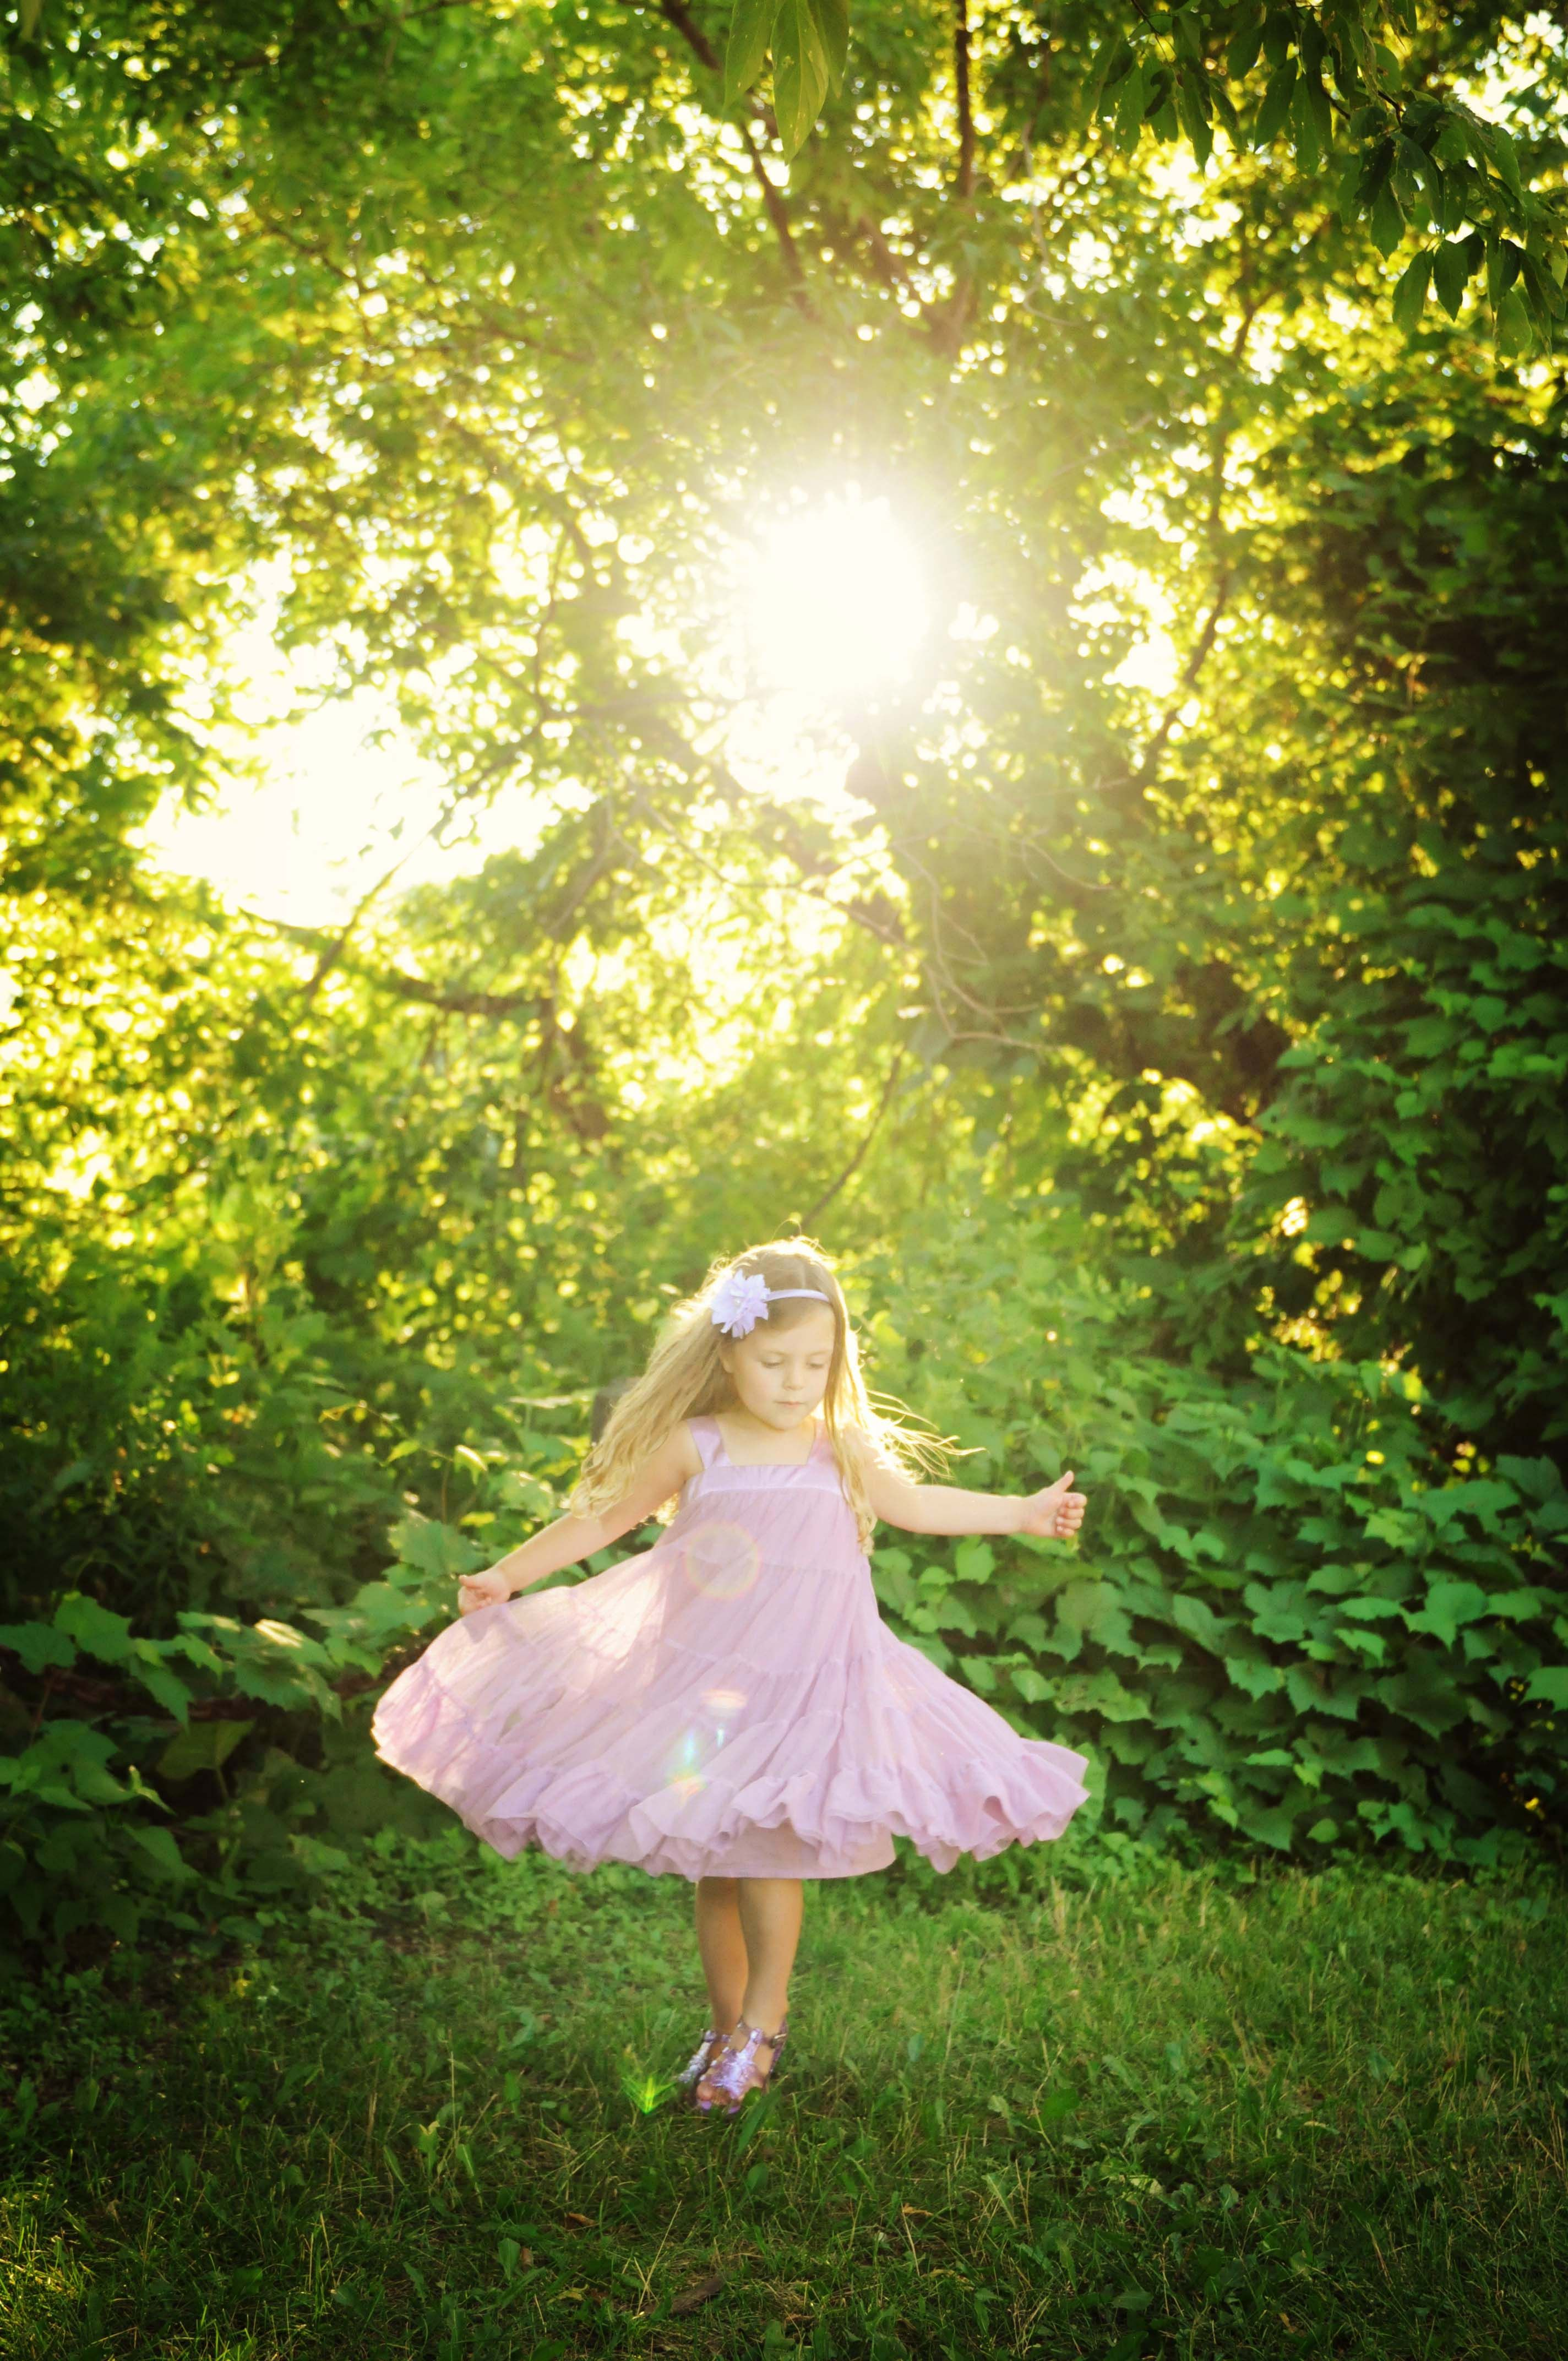 Twirling is good for the soul. It reminds us how to feel